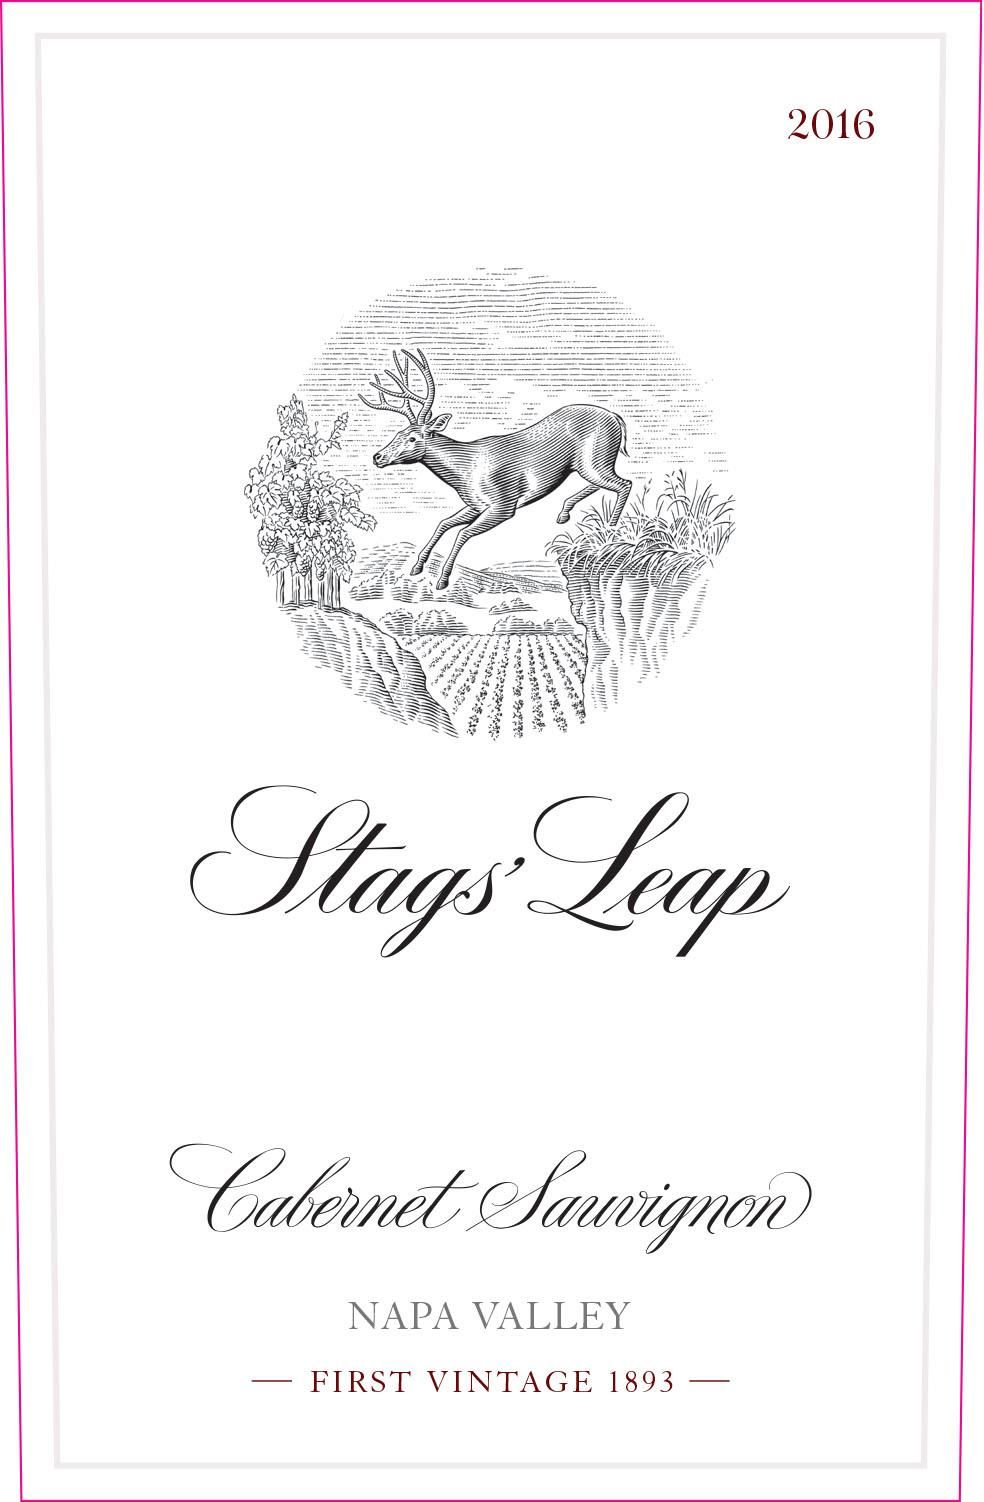 Stags' Leap Winery Cabernet Sauvignon 2016 Front Label